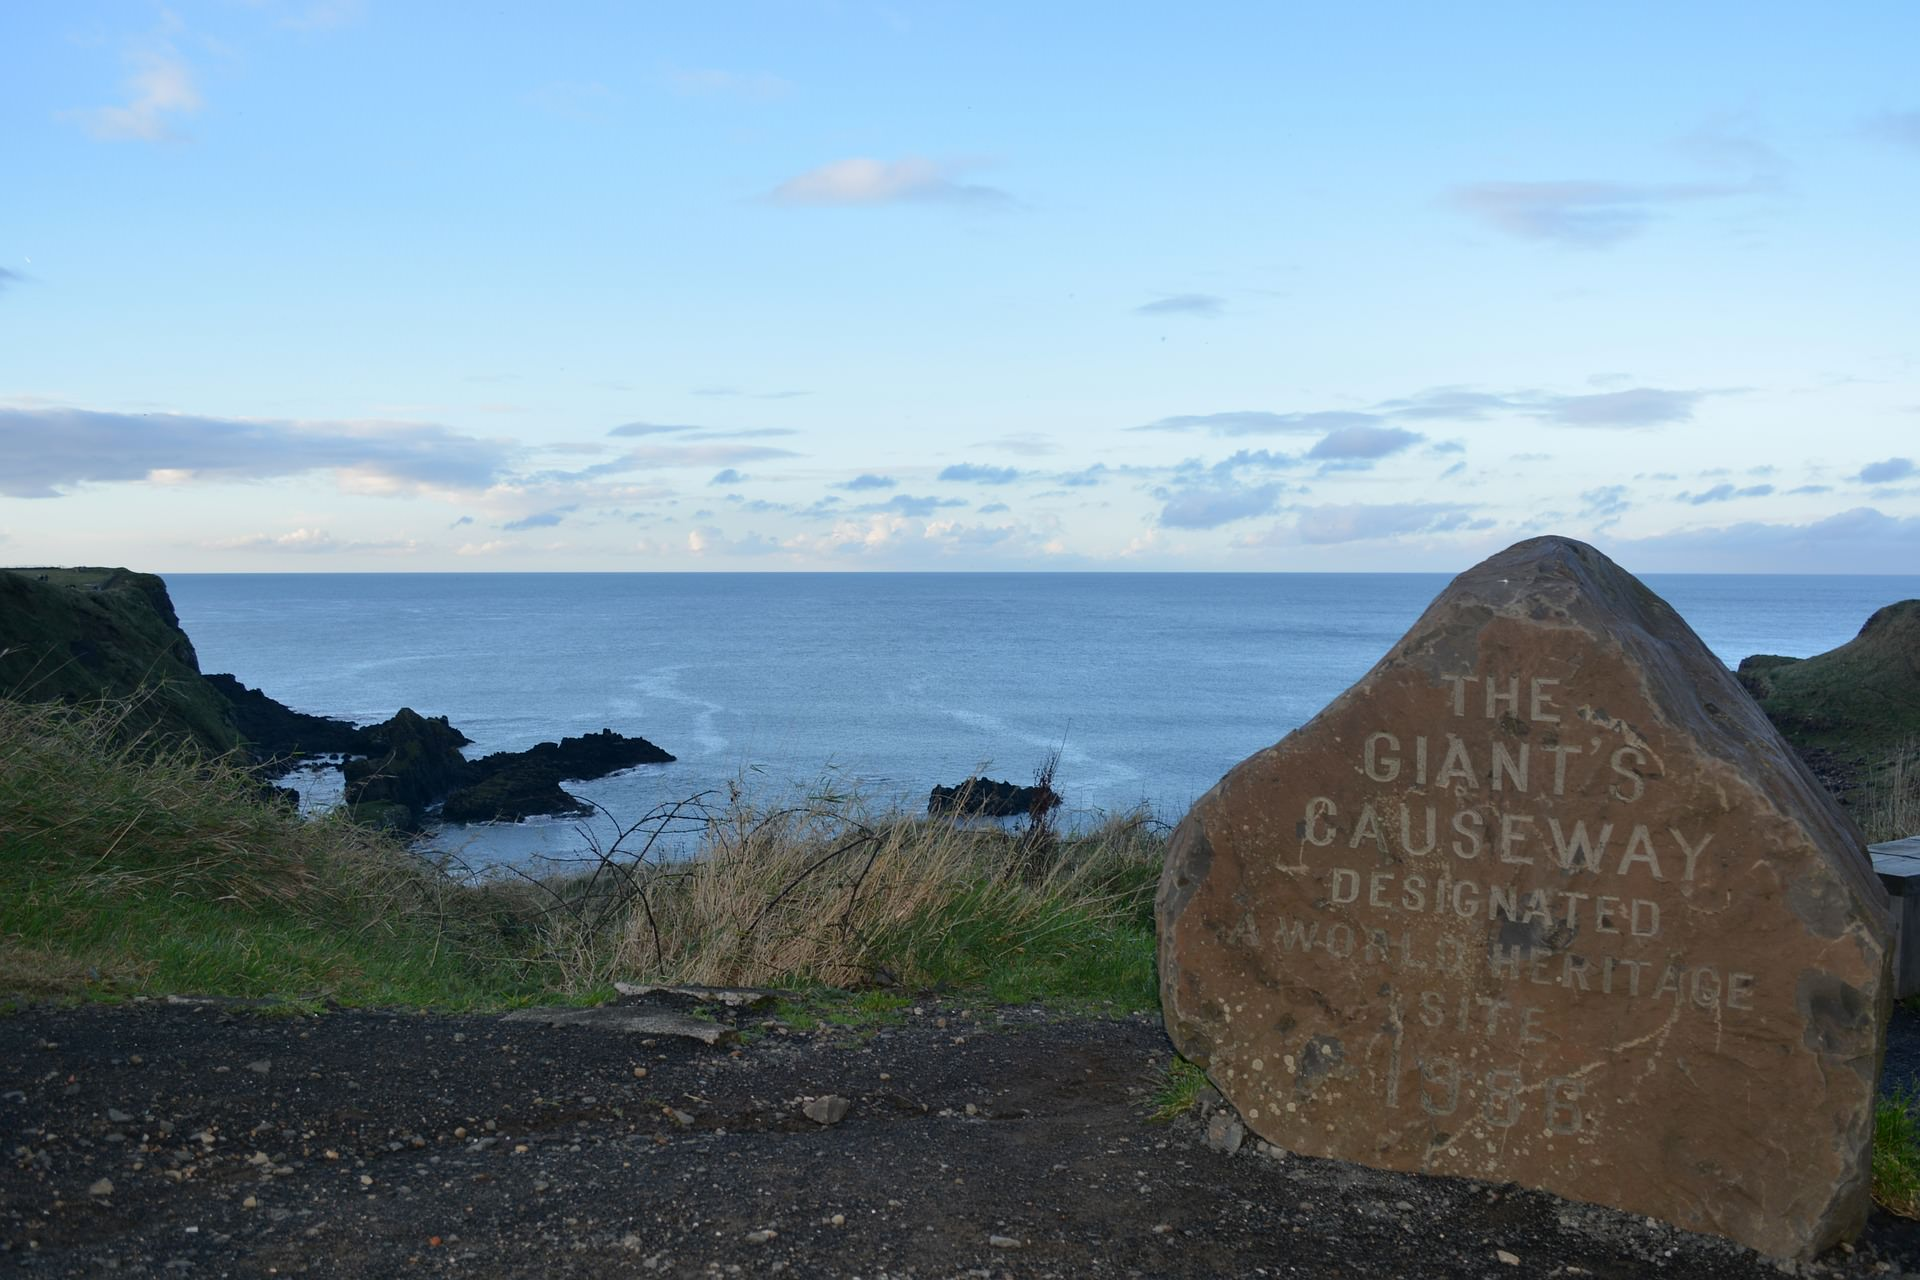 giants causeway sign